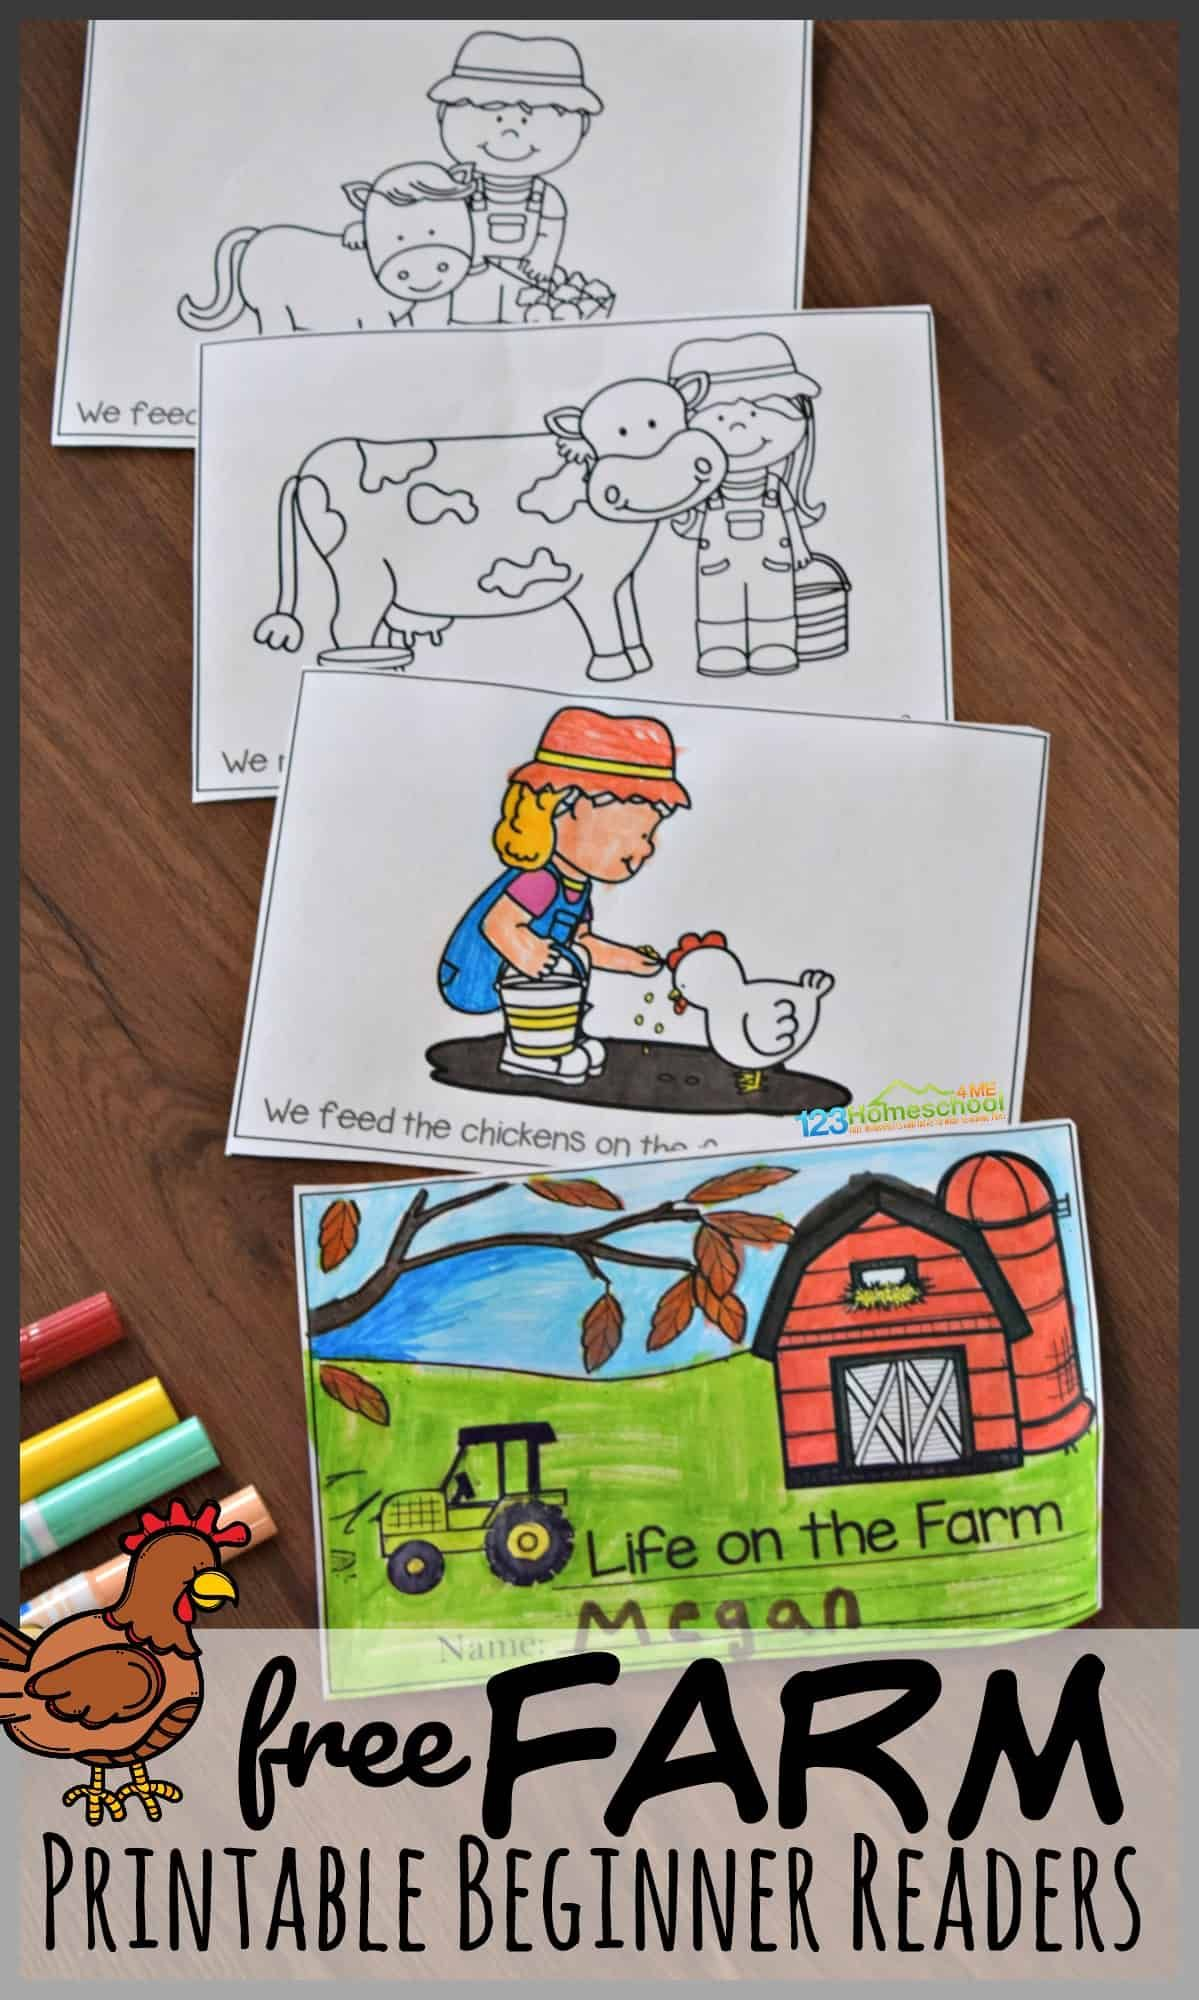 Free Farm Printable Beginner Reading Books